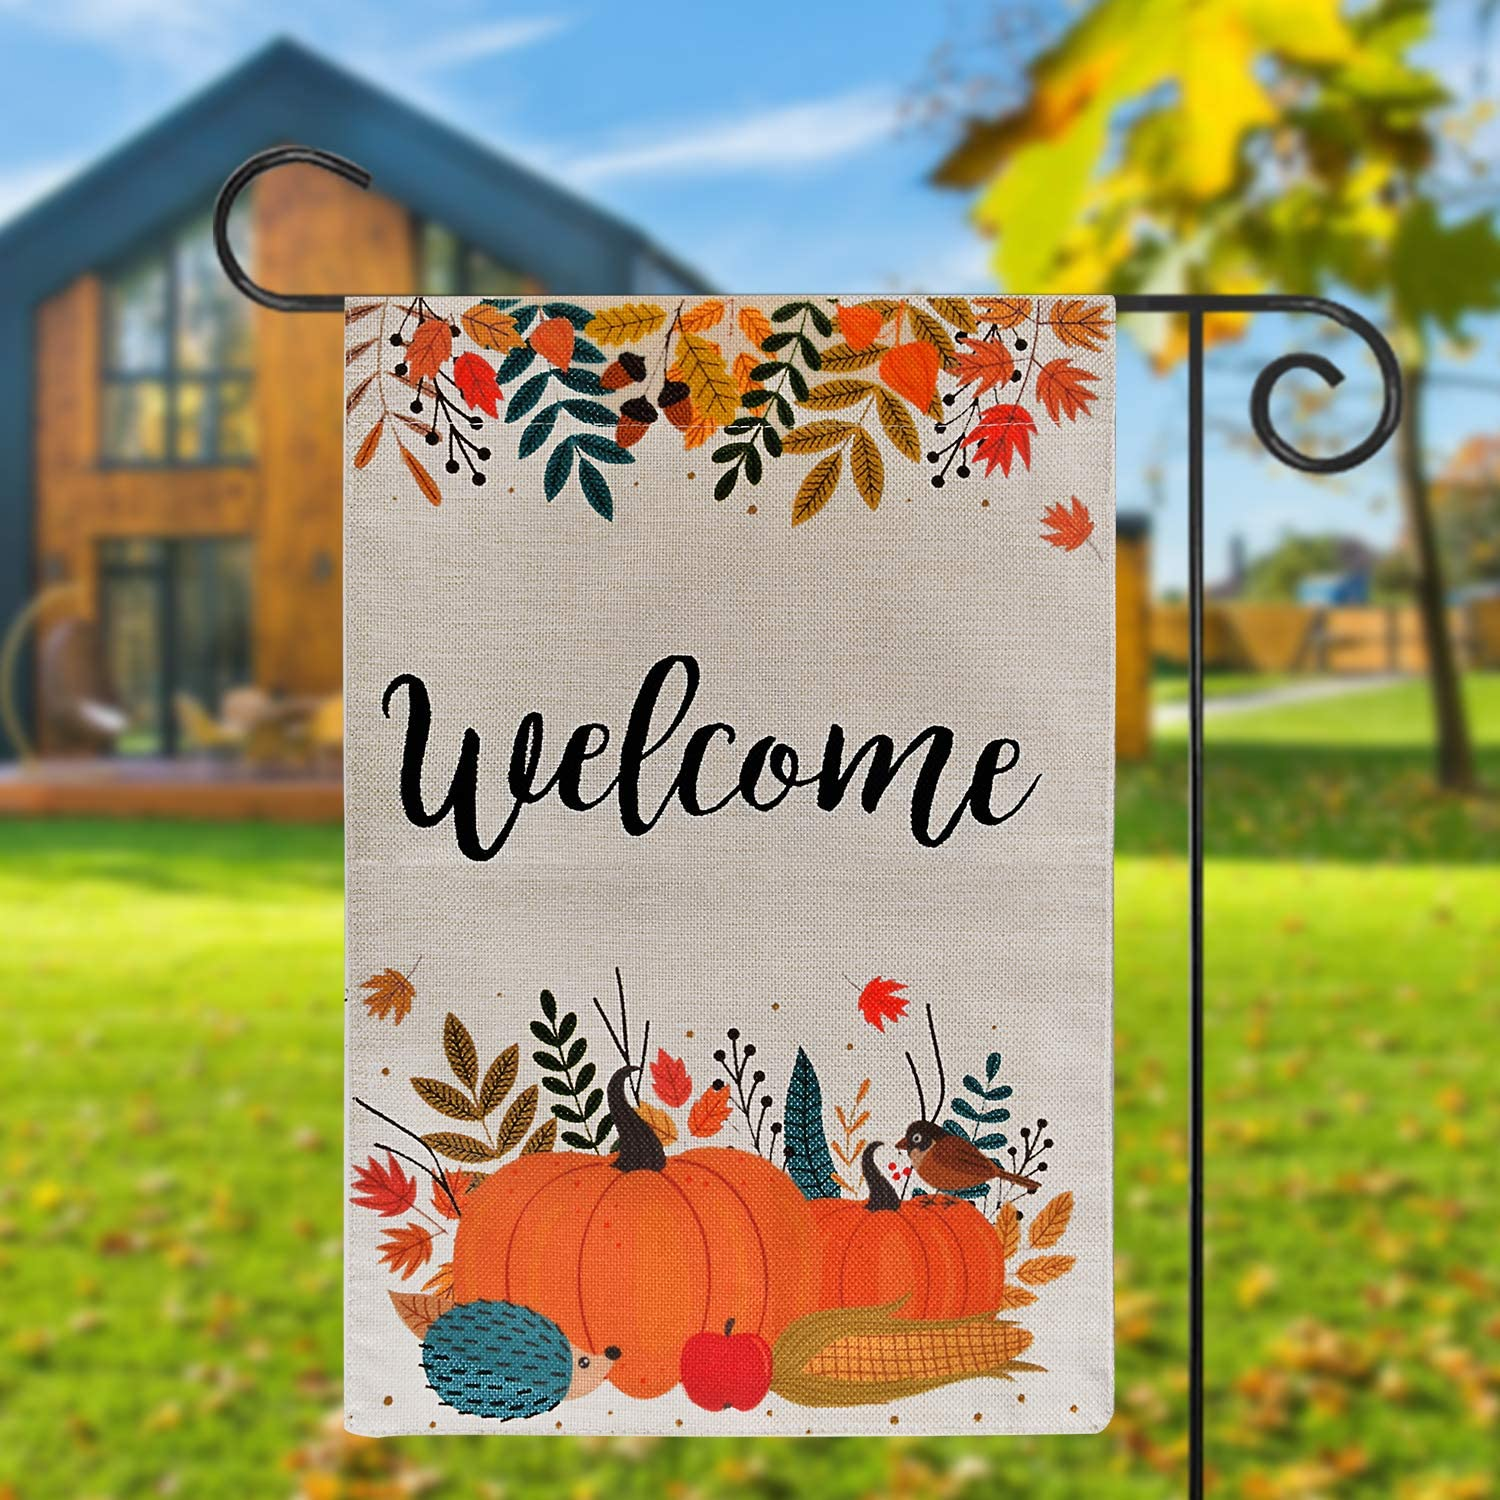 TGOOD Welcome Pumpkin Fall Garden Flag Vertical Double Sided, Seasonal Autumn Maple Leaves Fall Porch Decor, Vintage Halloween Thanksgiving Rustic Burlap Flag Yard Outdoor Decoration 12.5 x 18''